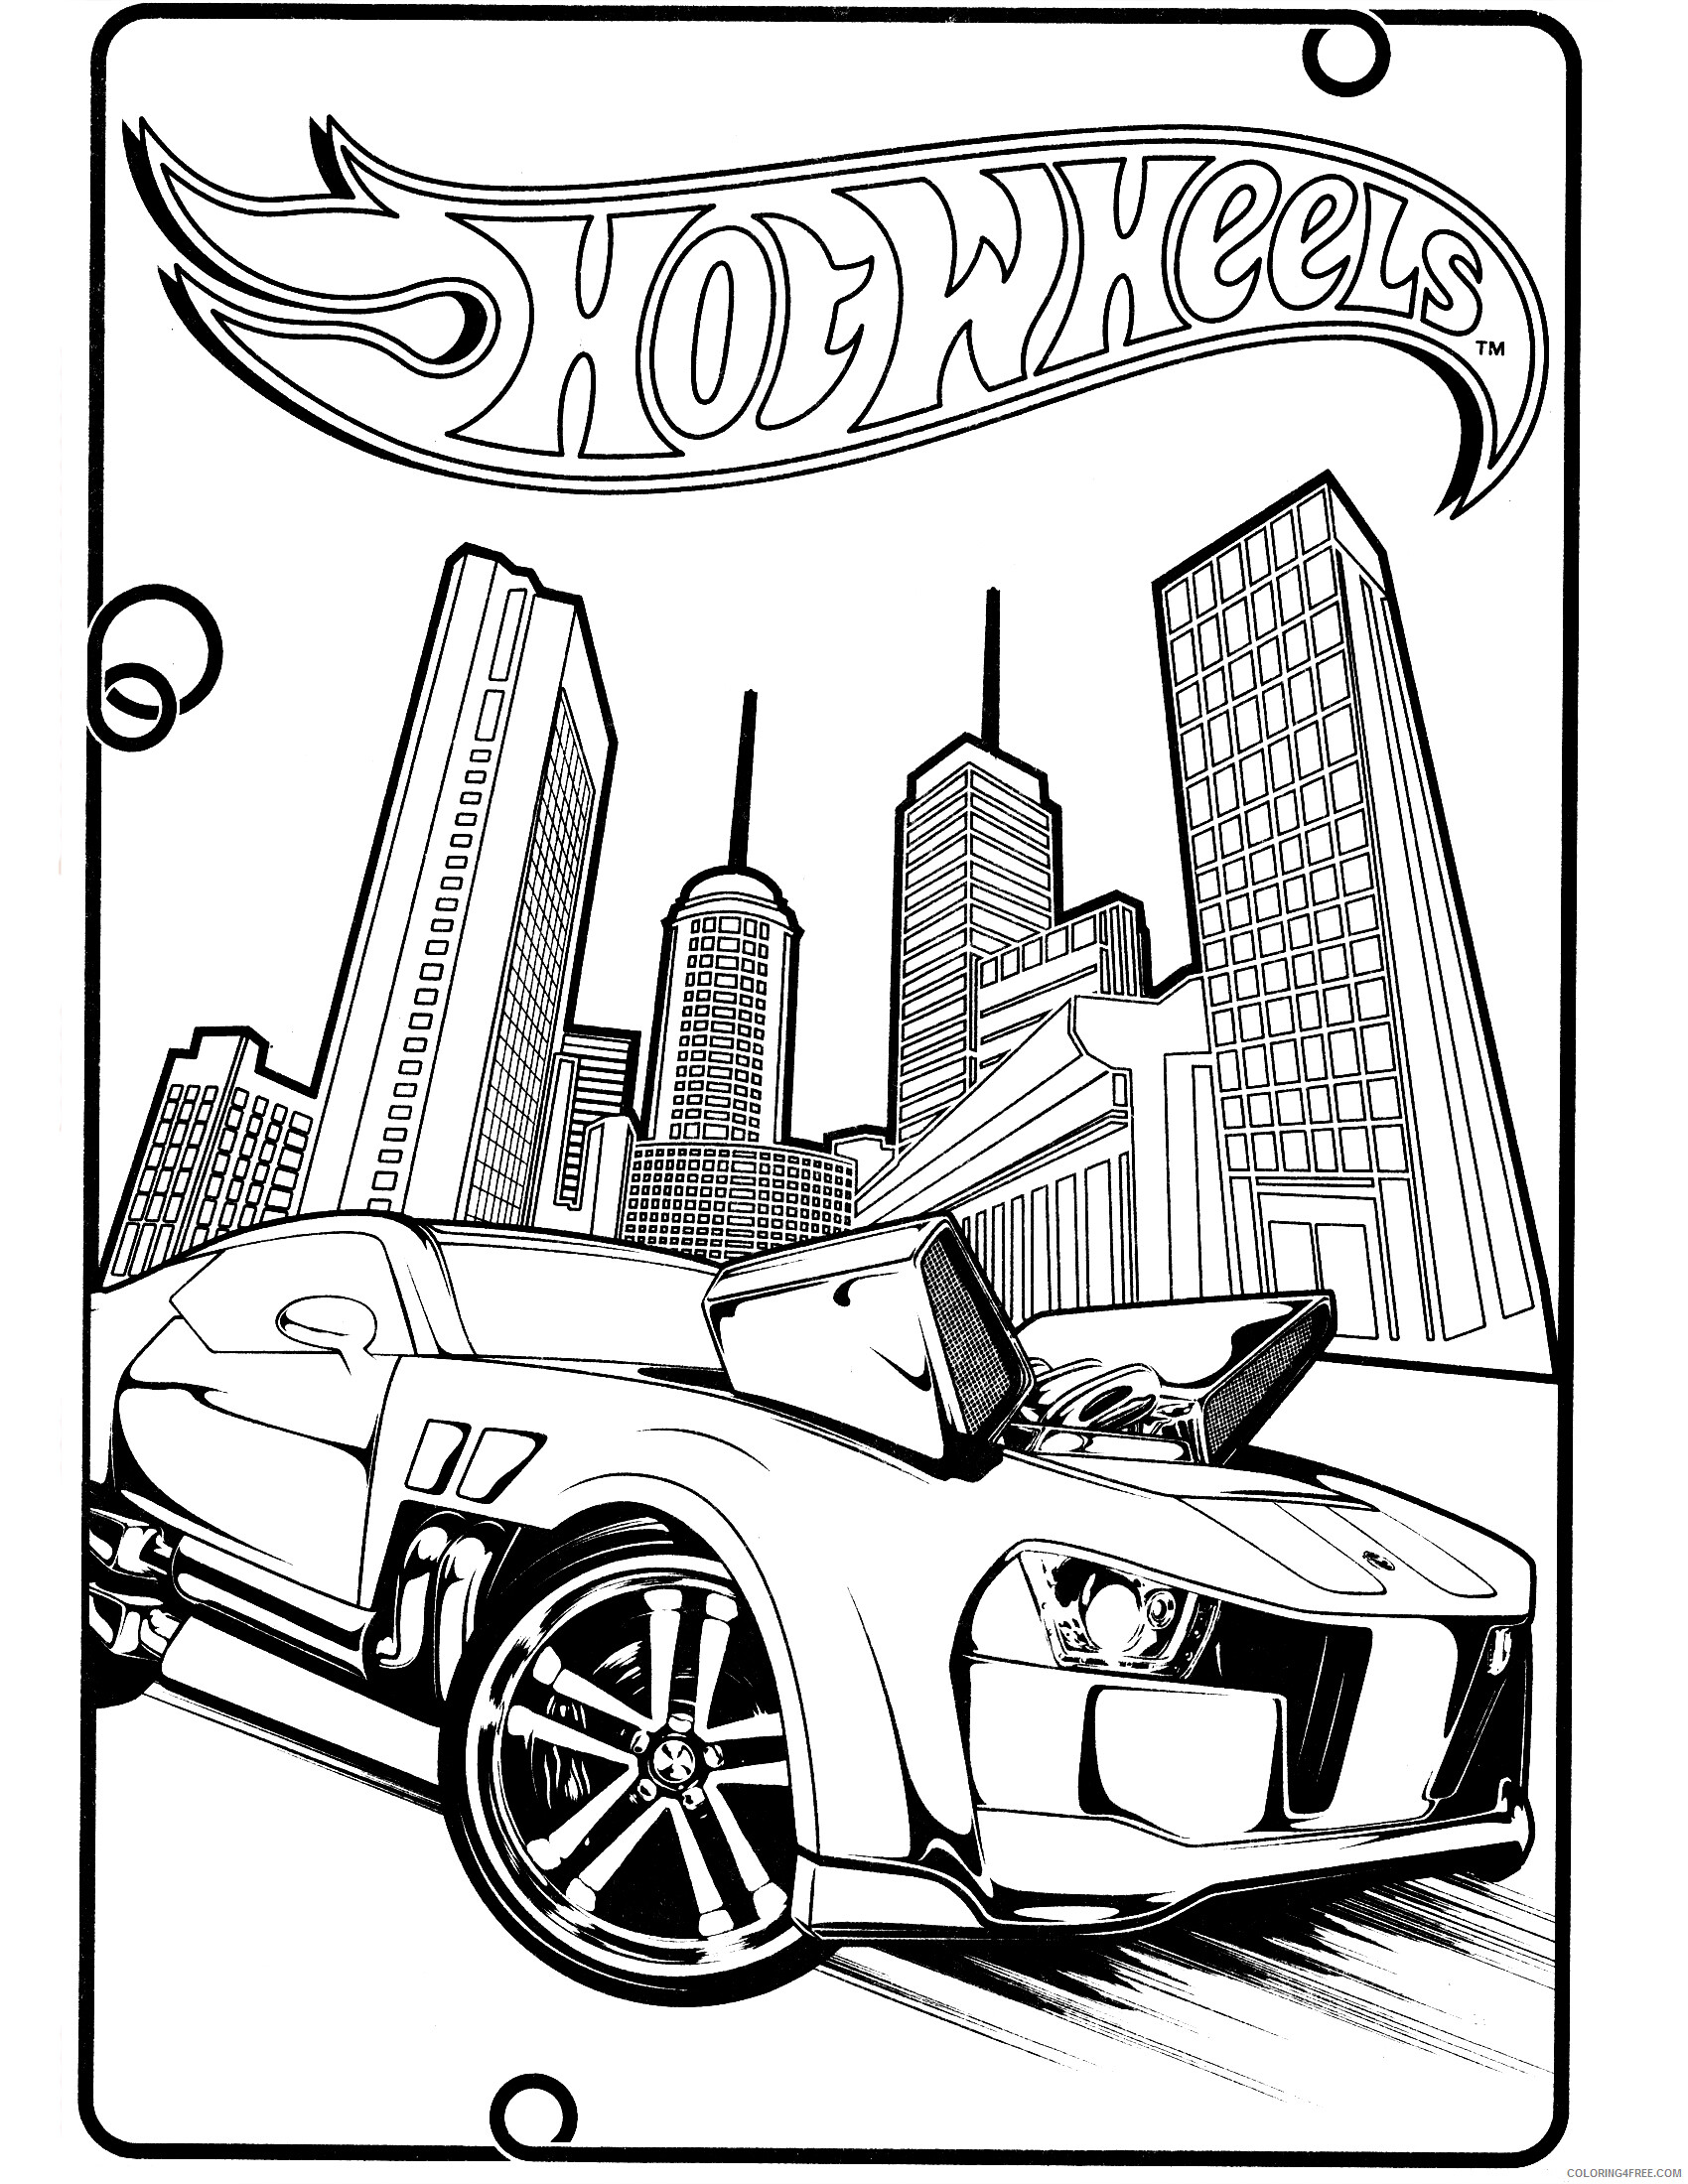 Hot Wheels Coloring Pages Hot Wheels Printable 2021 3398 Coloring4free